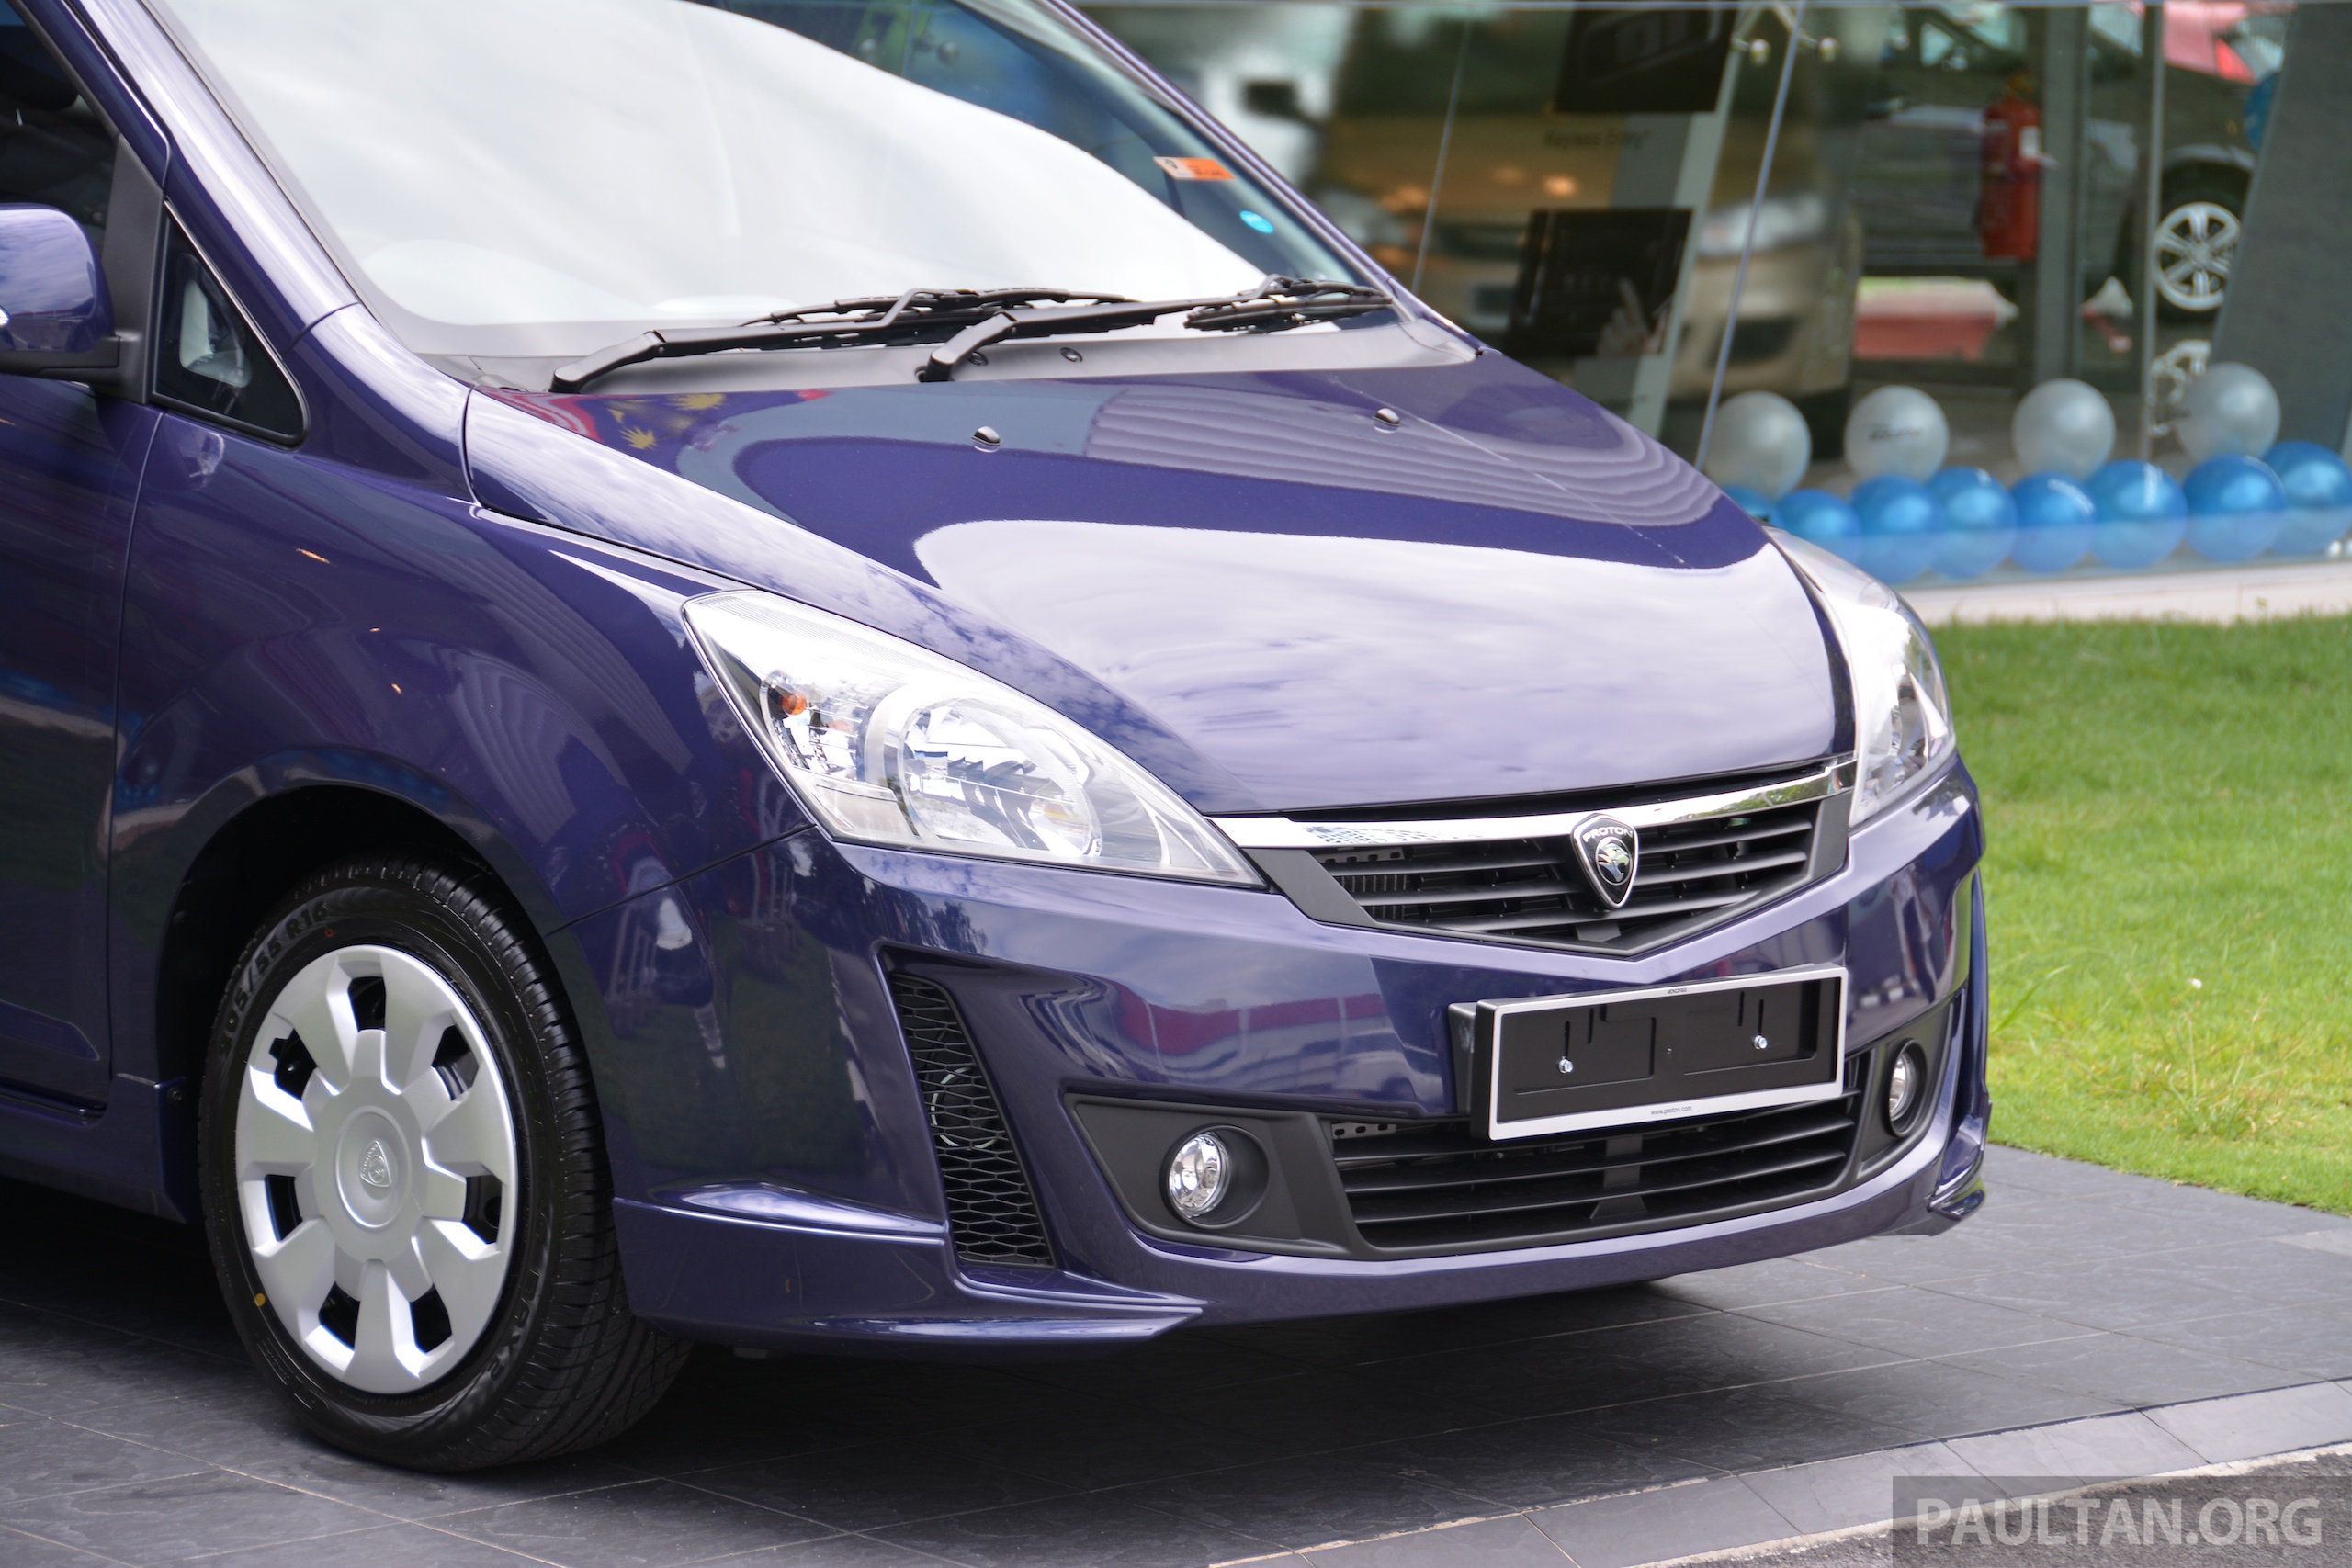 New Exora 2018 >> 2015 Proton Exora facelift launched – RM67k-82k, new range-topping Super Premium variant ...